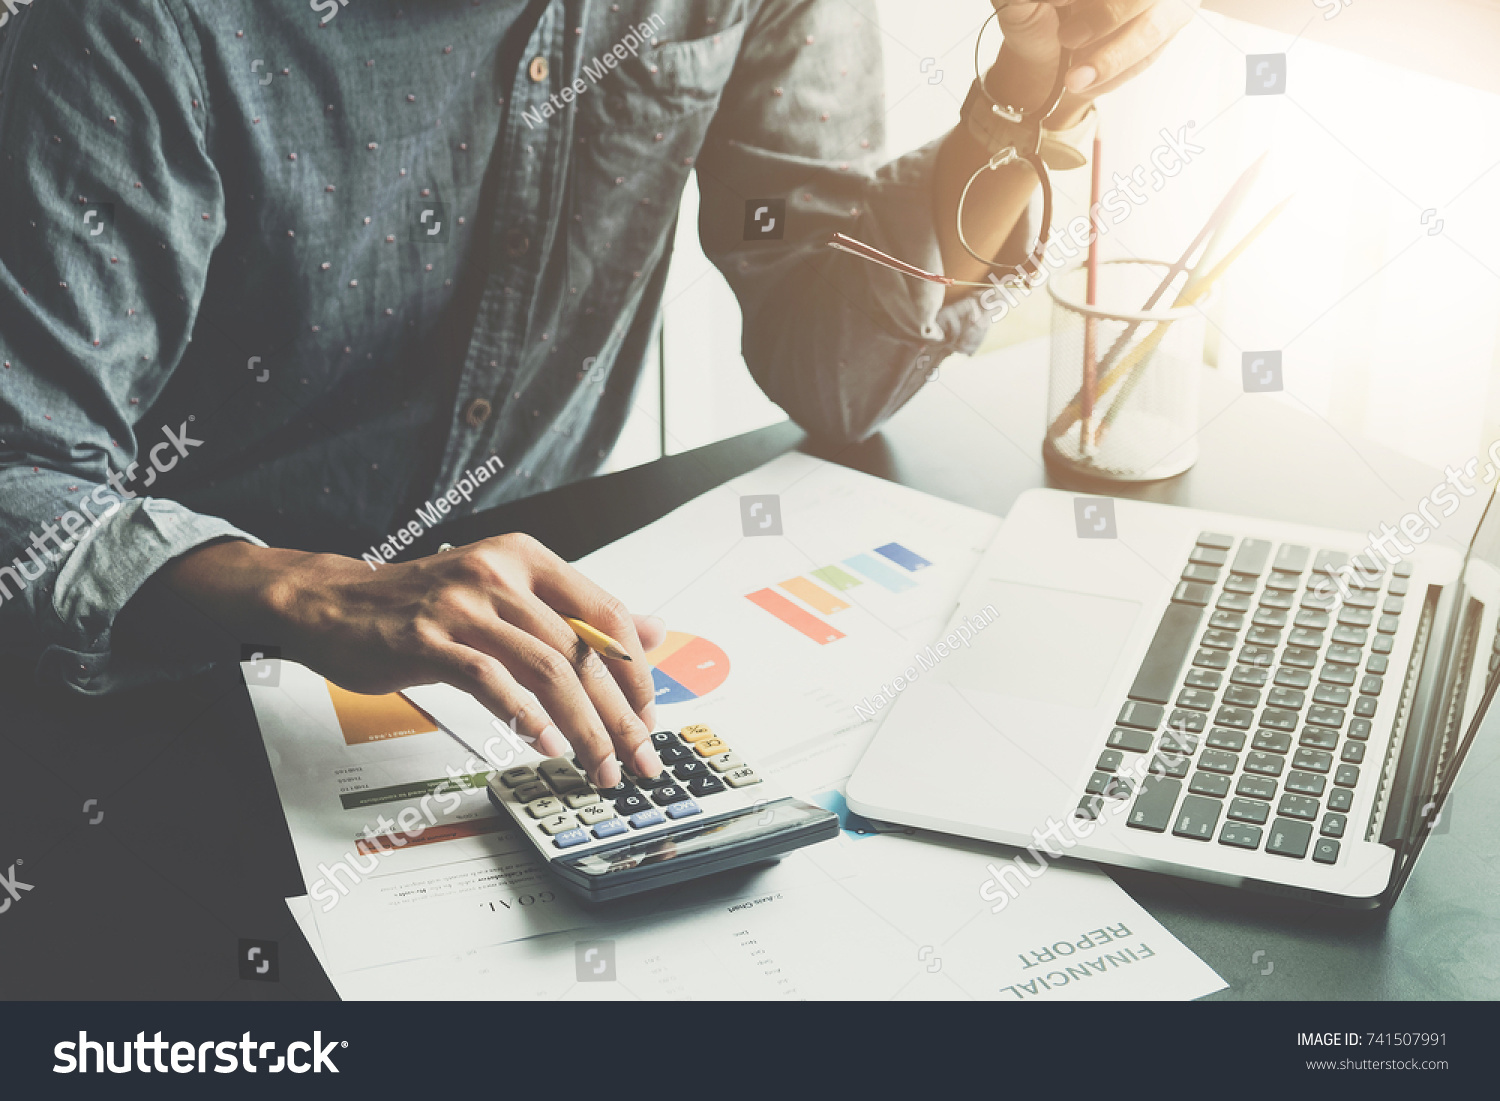 A man working about financial and analysis business document with calculator and holding glasses at his office to calculating expenses, Accounting concept #741507991